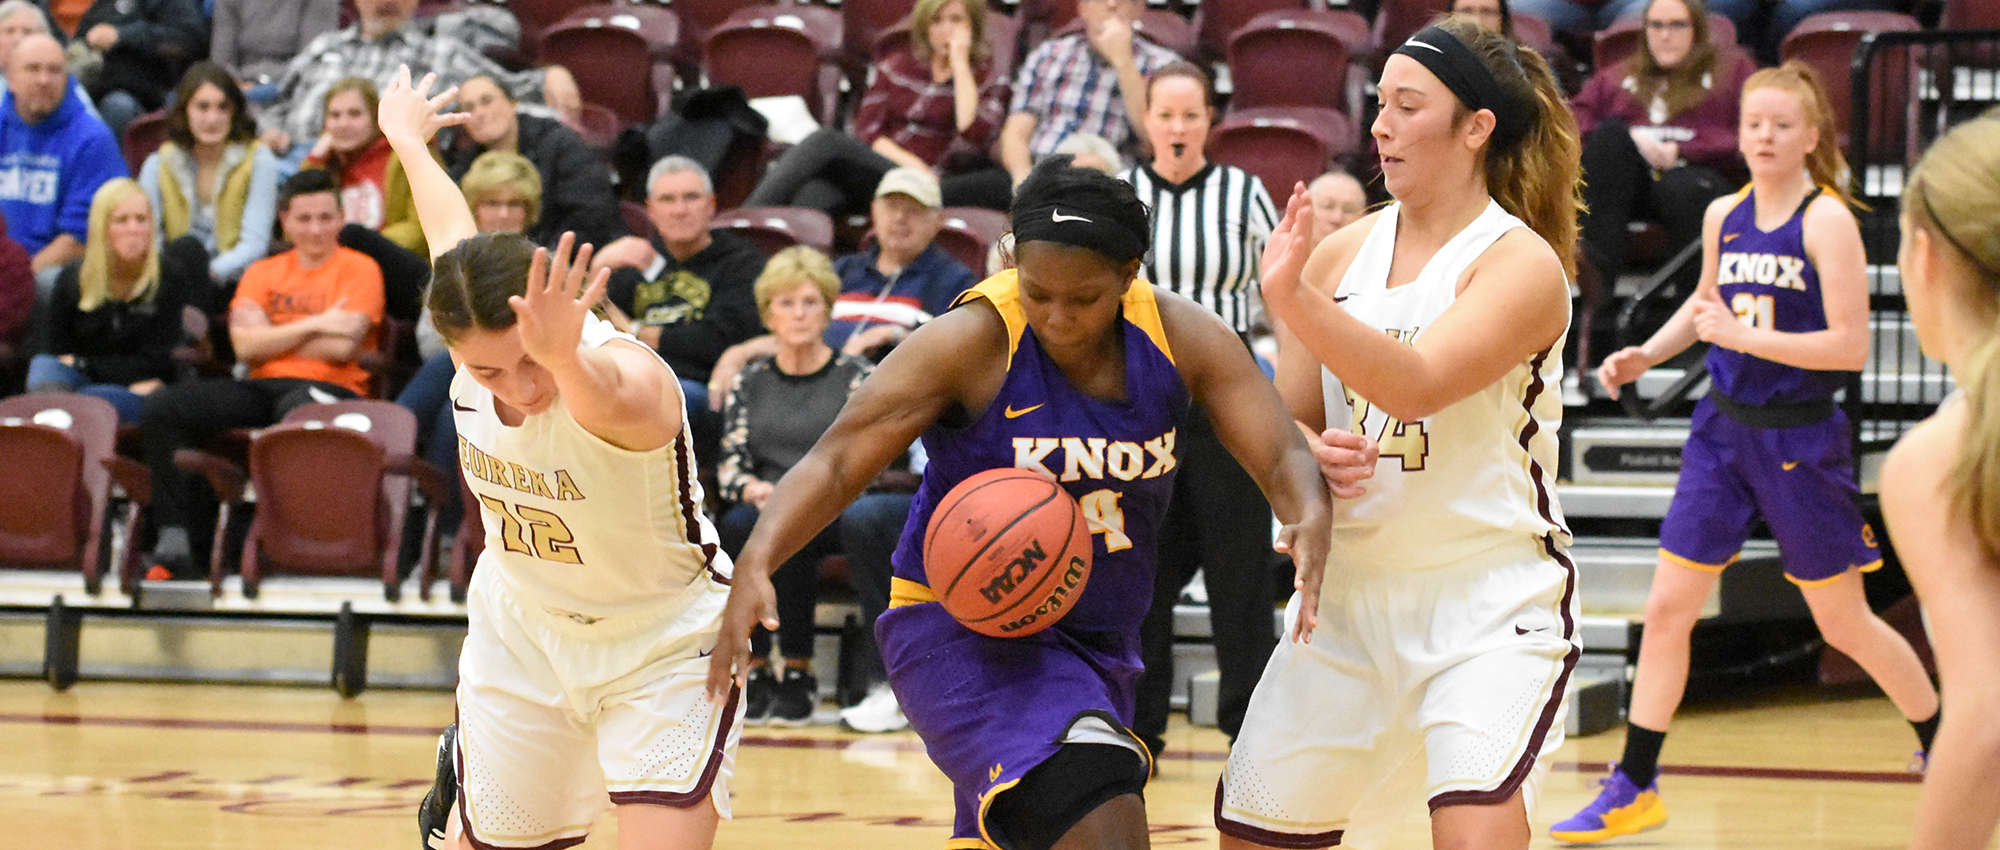 Knox Holds Off Eureka on Opening Night, 73-68